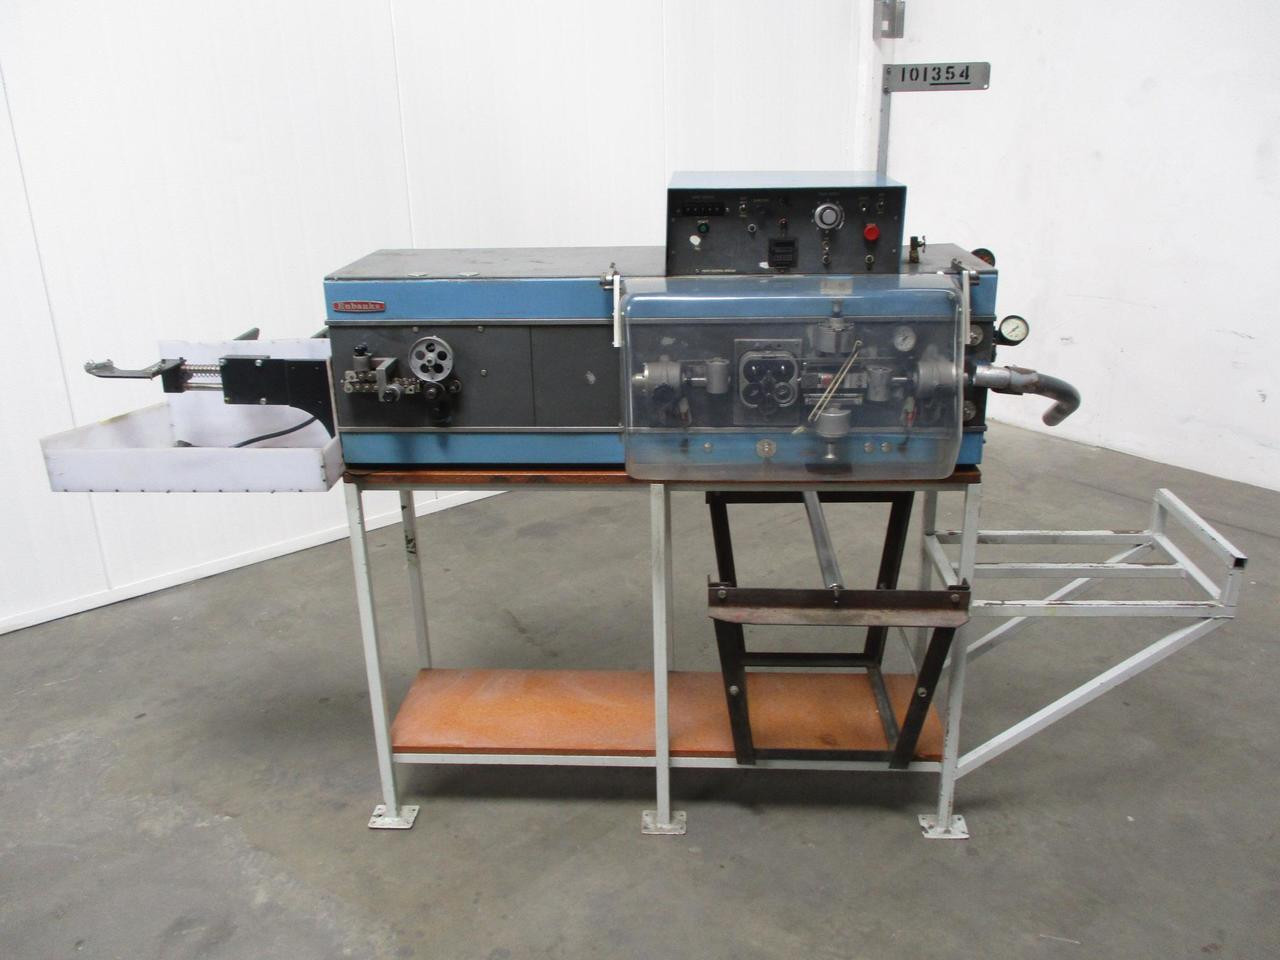 Eubanks Wire Stripping Machine | Eubanks 02600 Industrial Wire Stripper Cutter Test Equipment And